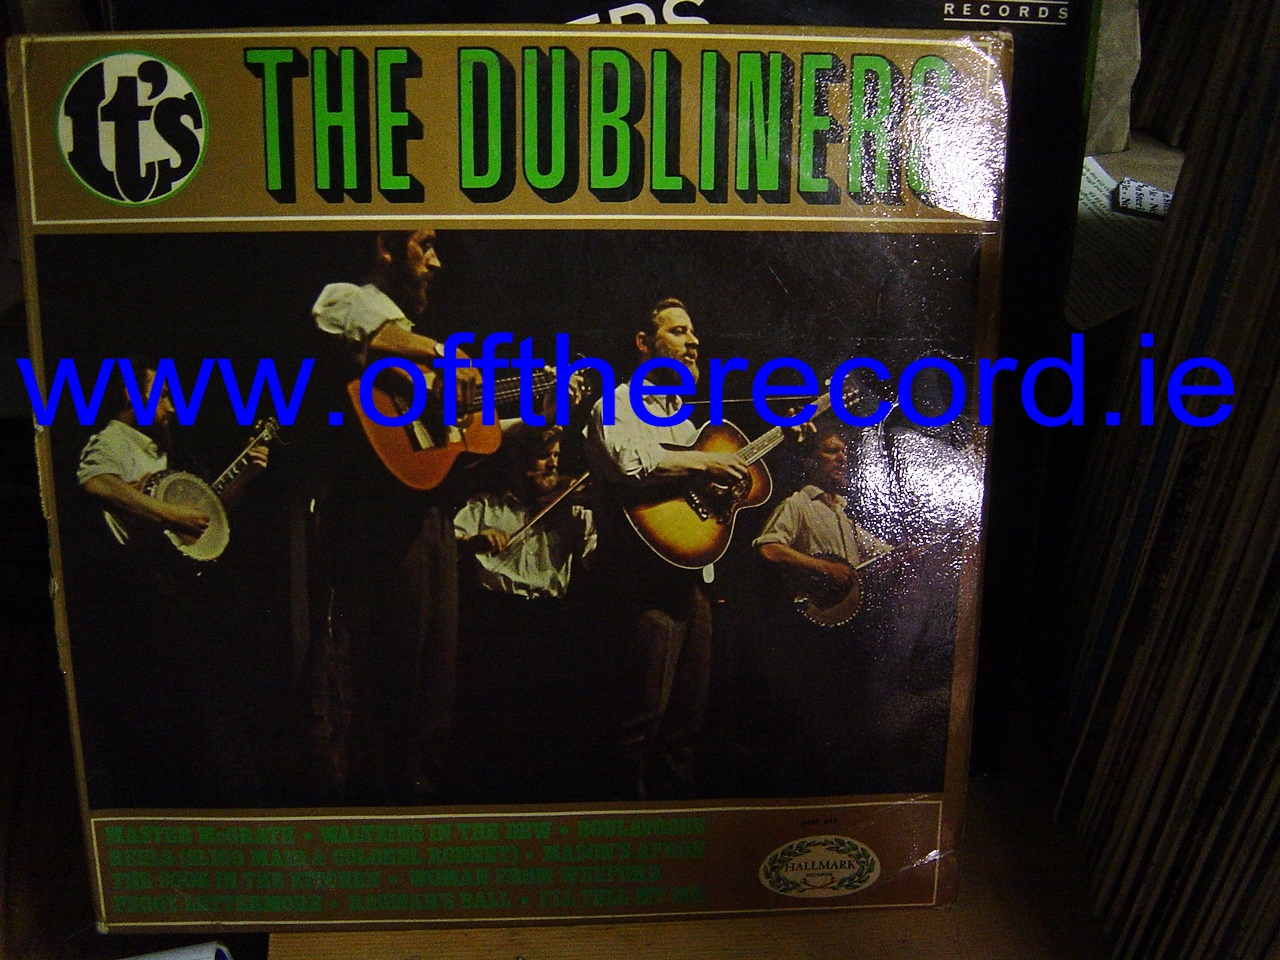 The Dubliners - It's the Dubliners - Hallmark Records